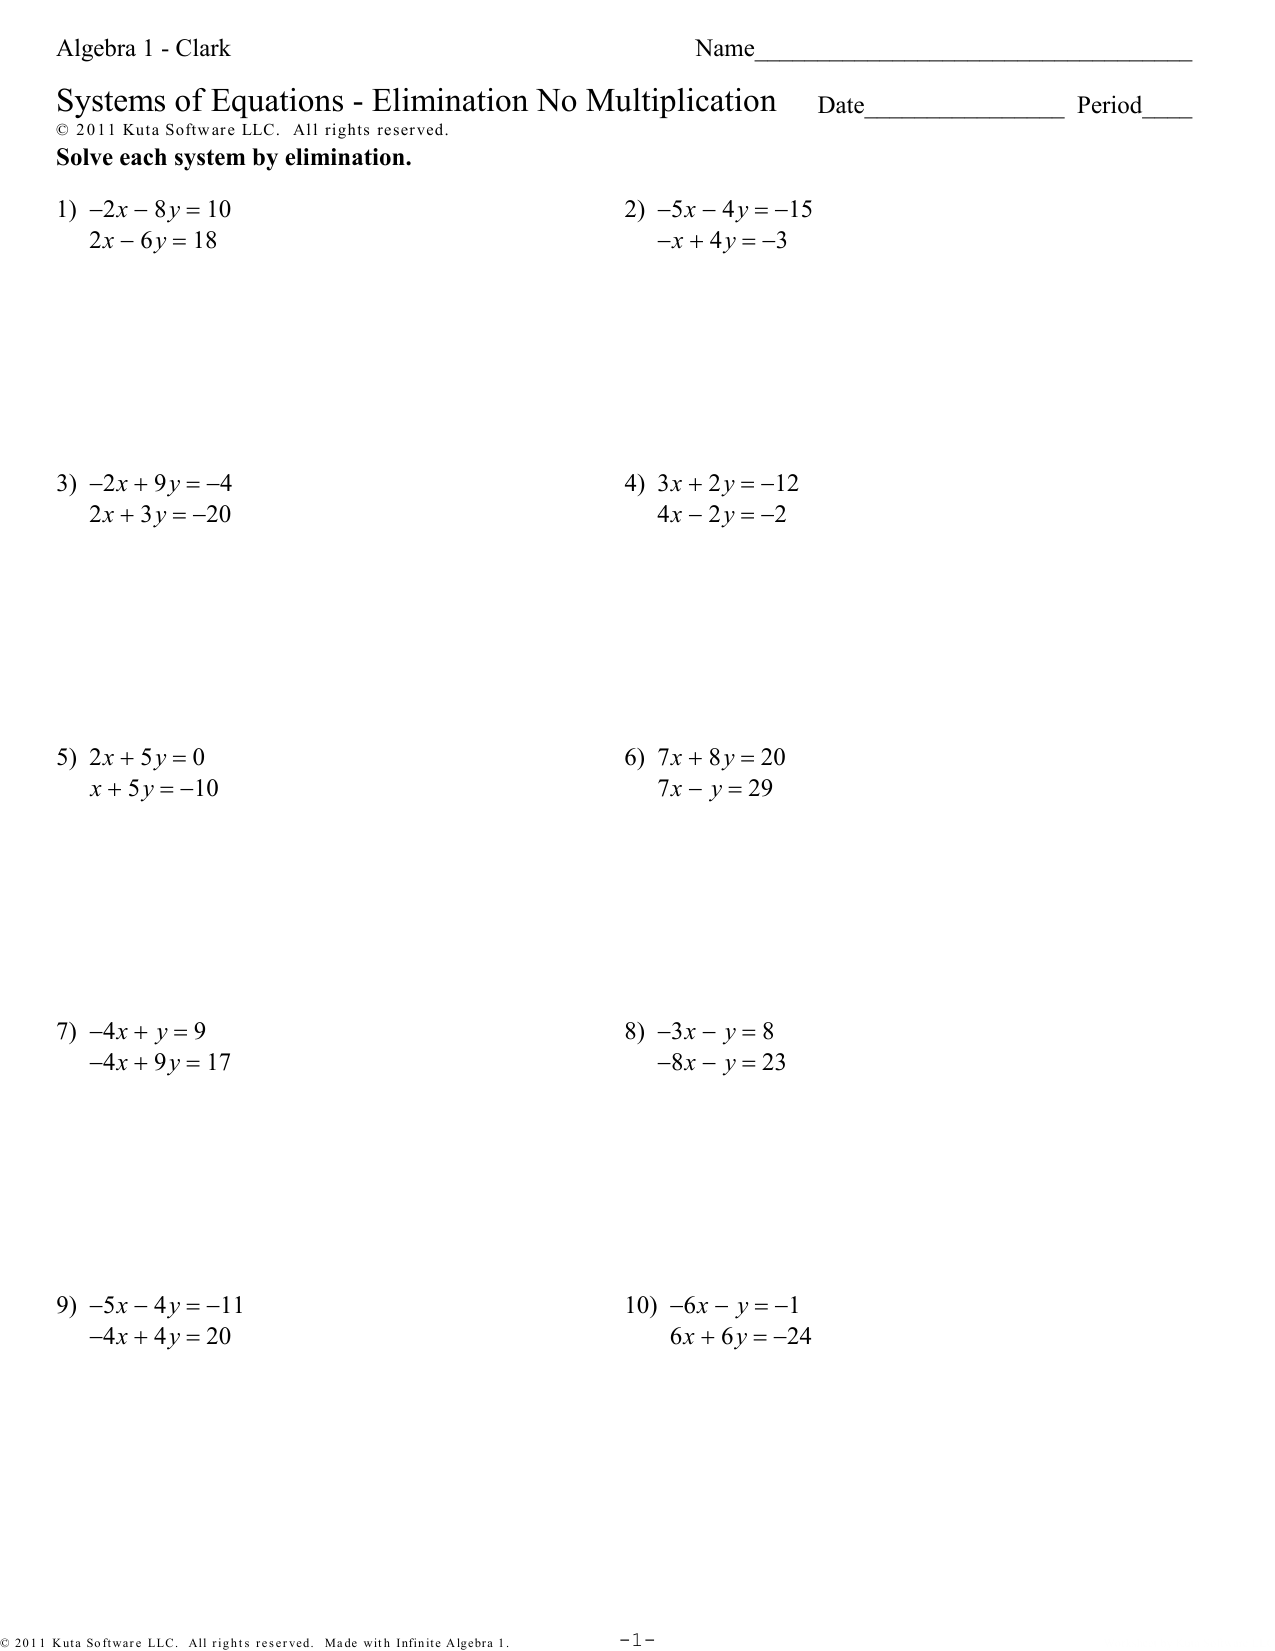 Algebra 1 Solving Systems By Elimination Worksheet Answers